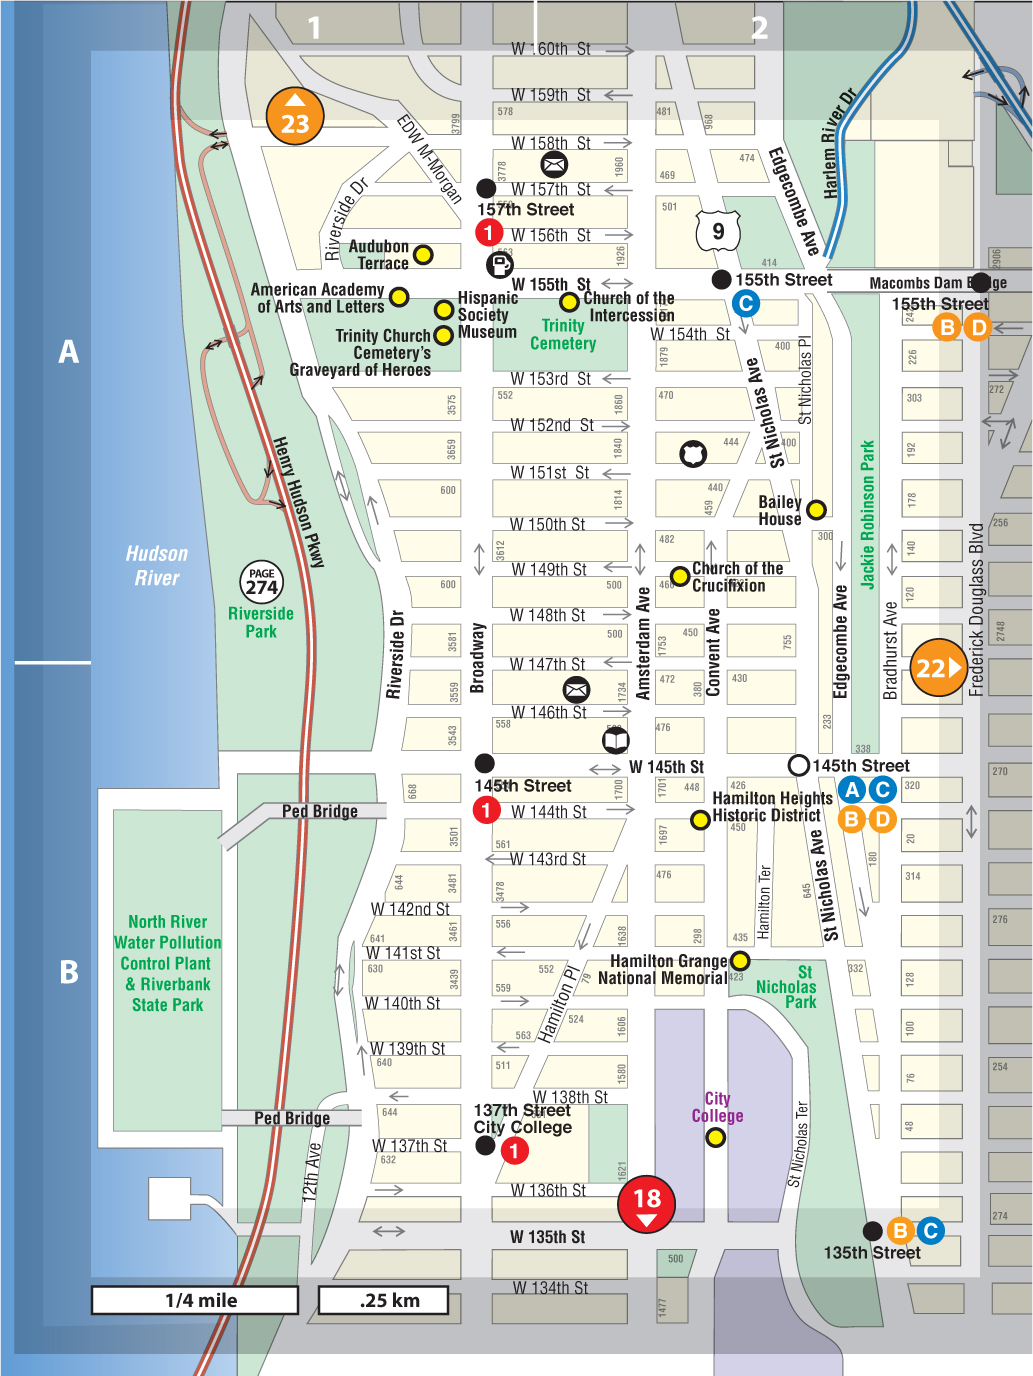 Manhattanville Campus Map.Manhattanville Hamilton Heights Not For Tourists Guide To New